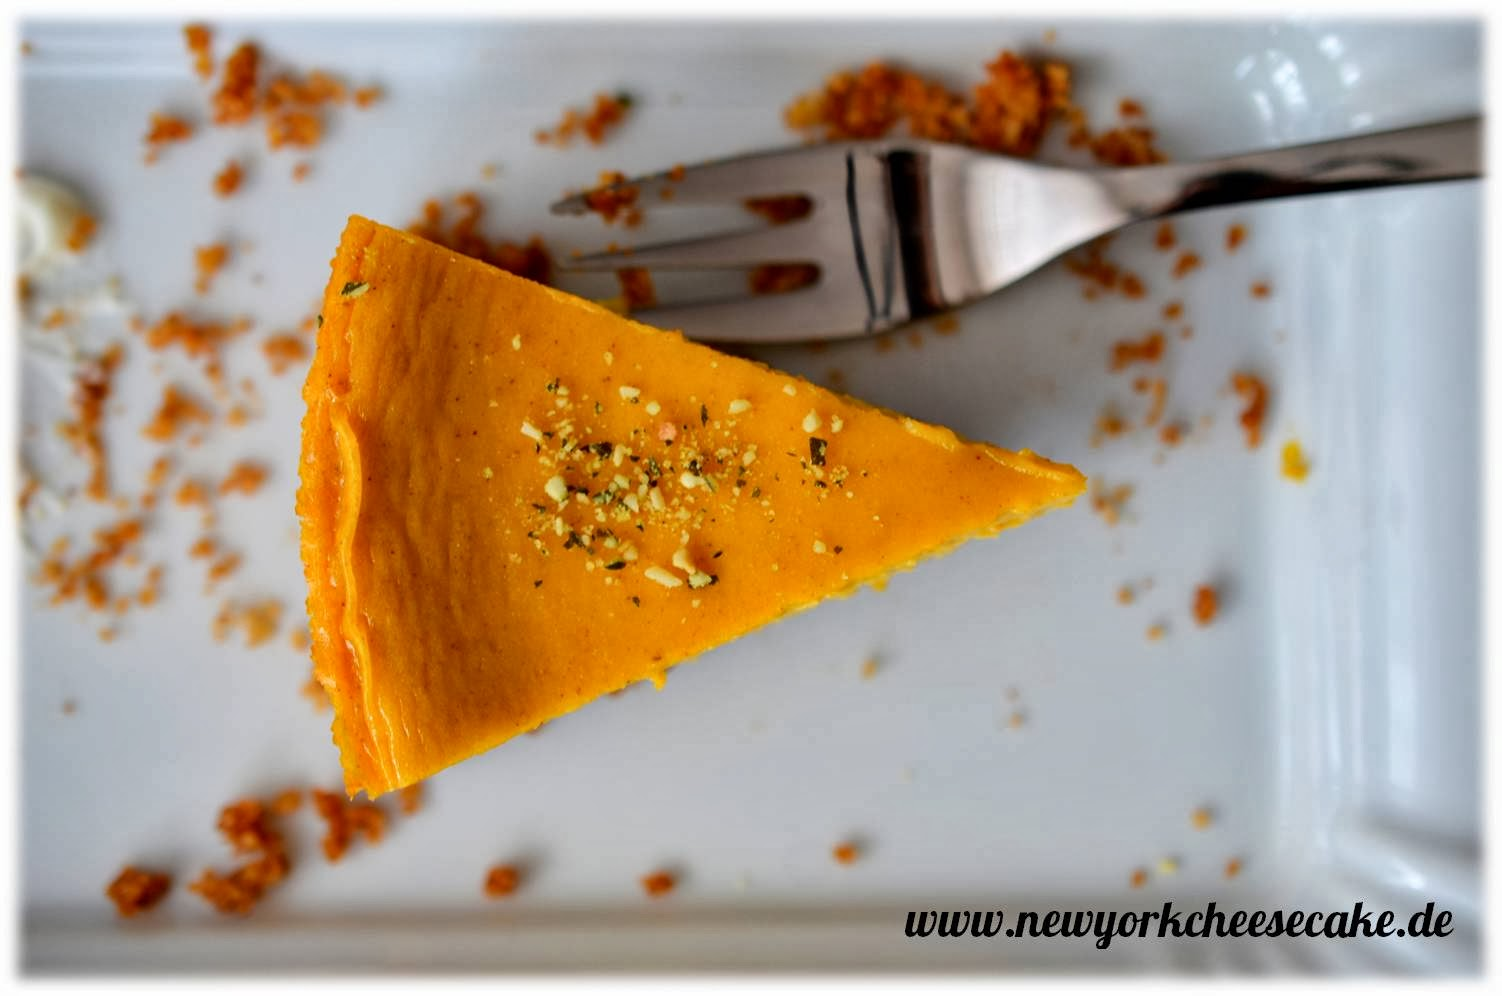 http://ny-cheesecake.blogspot.de/2013/10/new-york-cheesecake-meets-kurbis-tipps.html